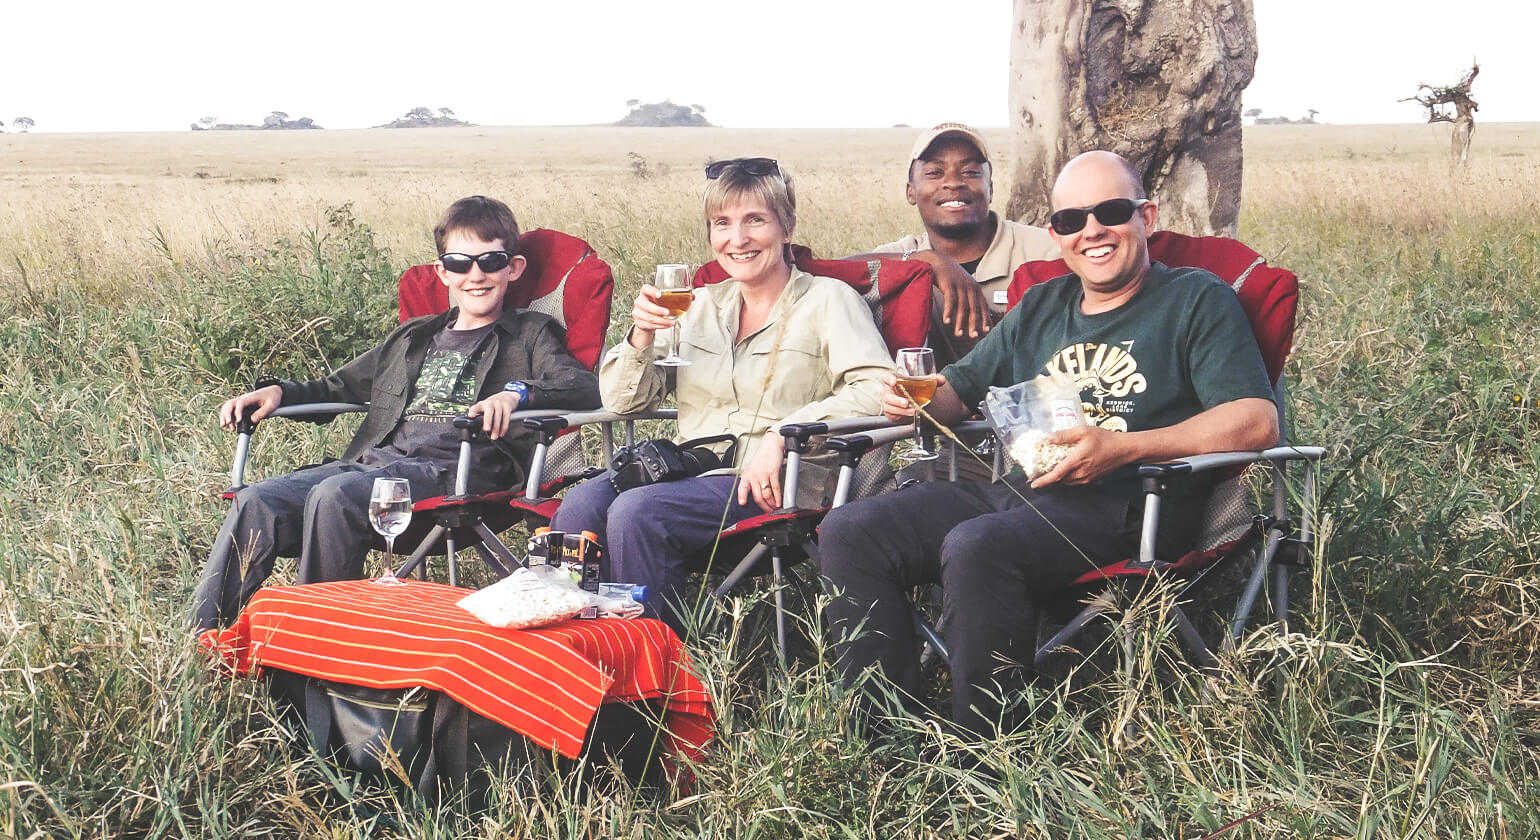 All of us in Tanzania on Safari with Laban our guide - 2018